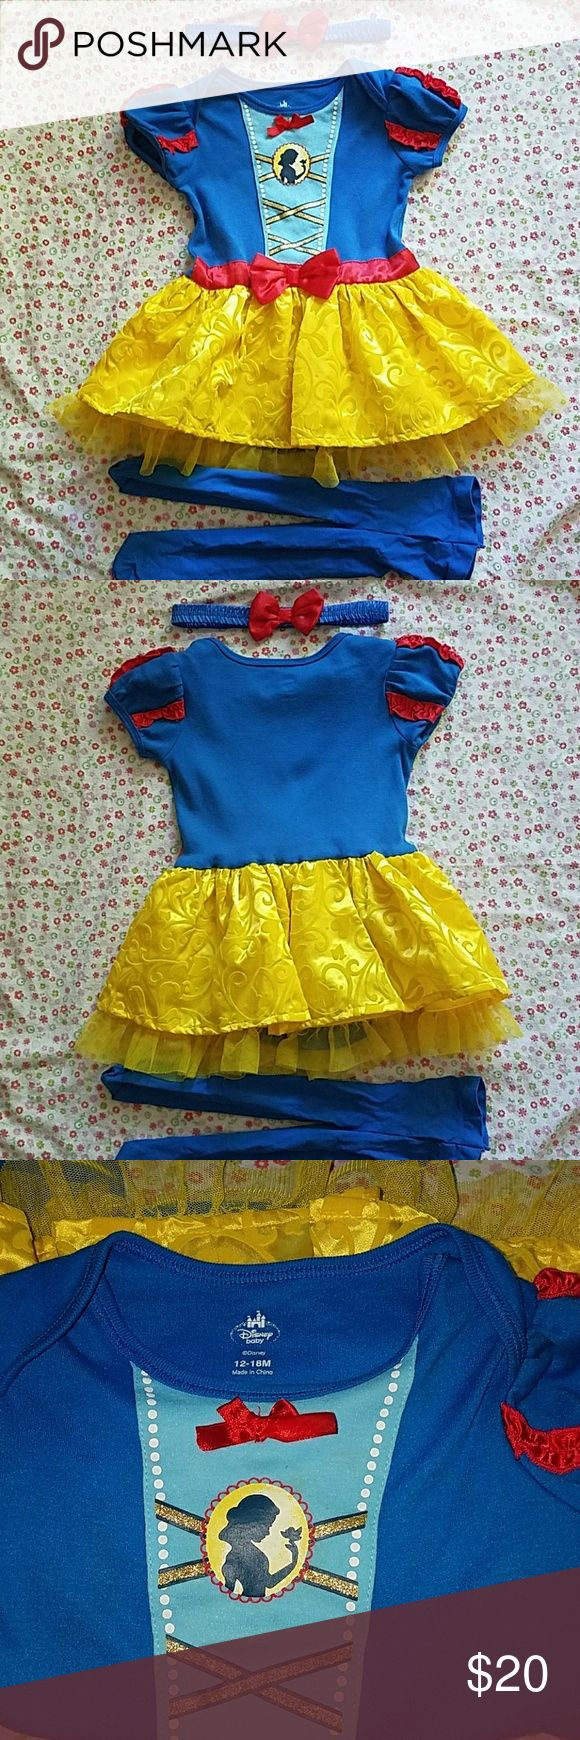 Disney Snow White Costume from Disney's Snow White for a toddler. Comes with tights and a head band. Head band is a little big. Button onesie under skirt, so can possibly my fit up to 24 months depending on the size of your baby/ toddler. Please ask questions! All included, I do discounts on bundles!! Reasonable offers welcome Disney Costumes